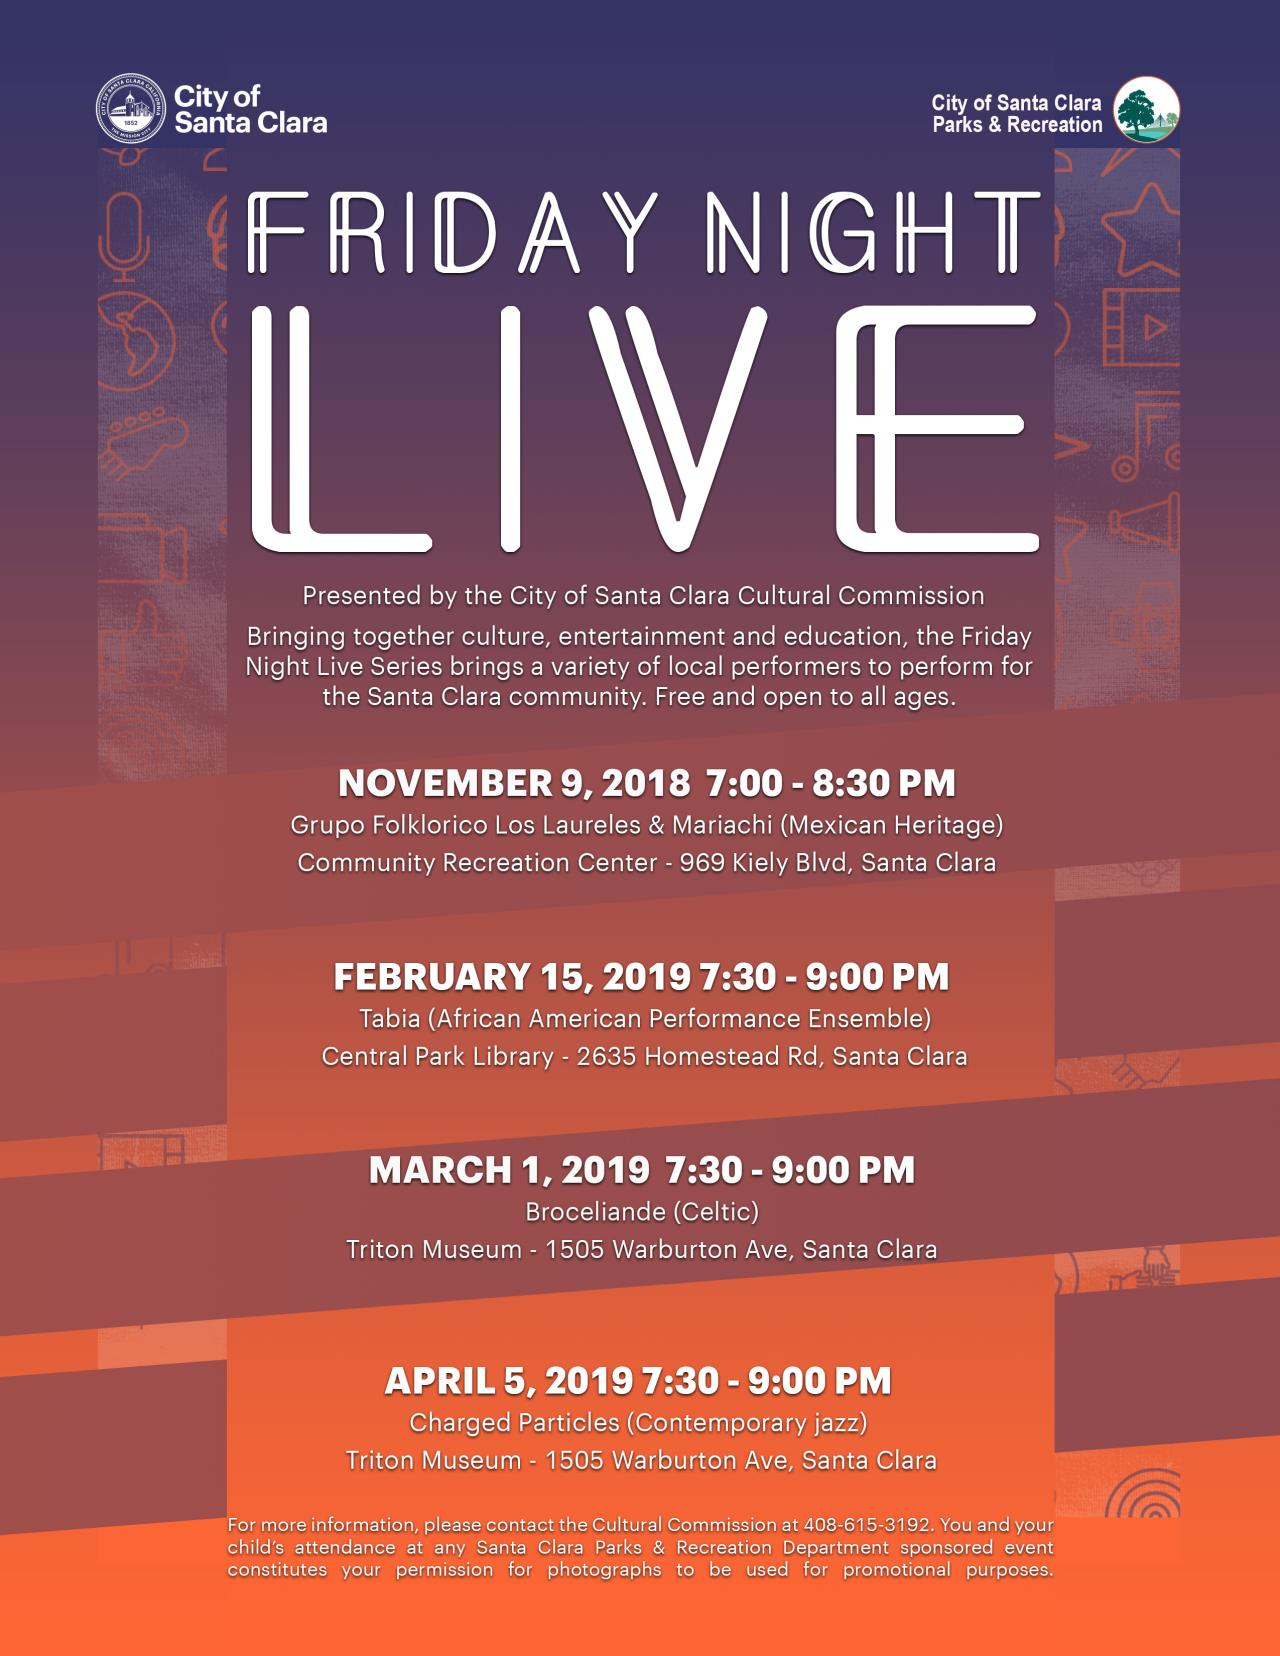 Friday Night Live 2018